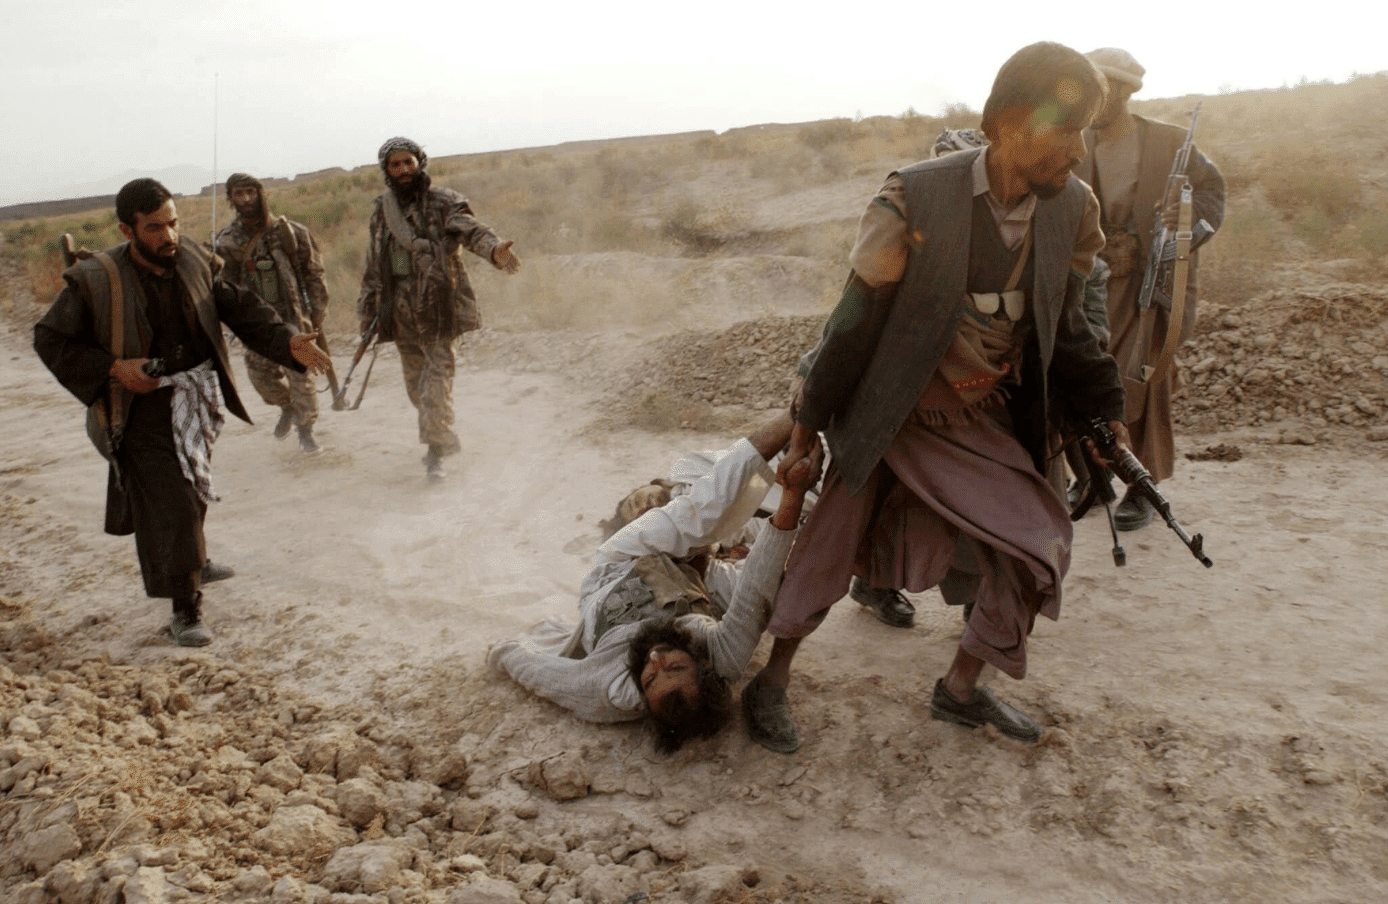 Image Northern Alliance soldiers dragging a captured ISIS fighter during their advance on Kabul in 2001. (James Hill)